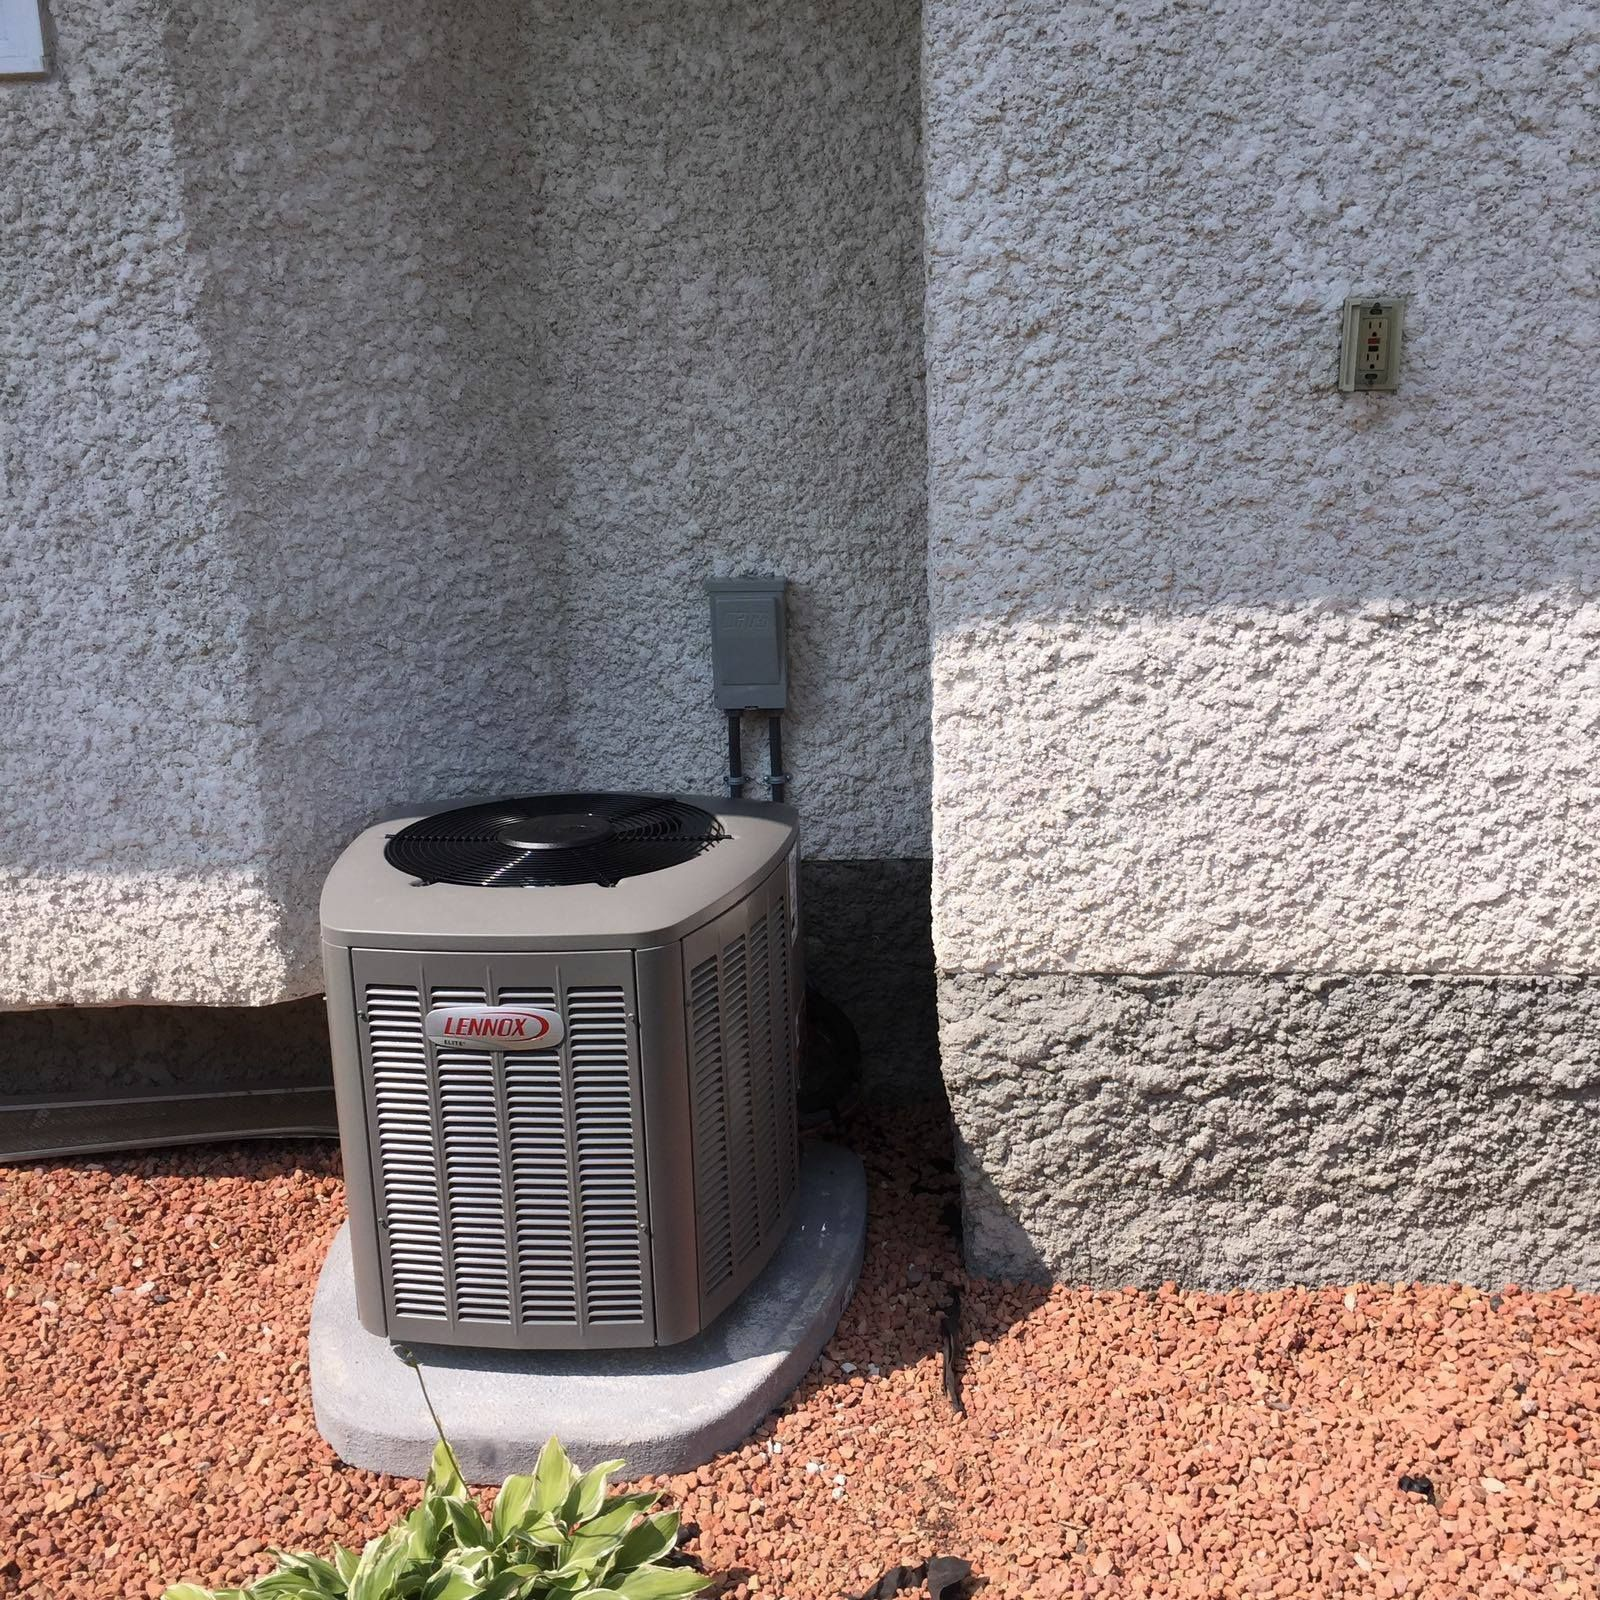 Air Conditioning installation and repair. AirCondition